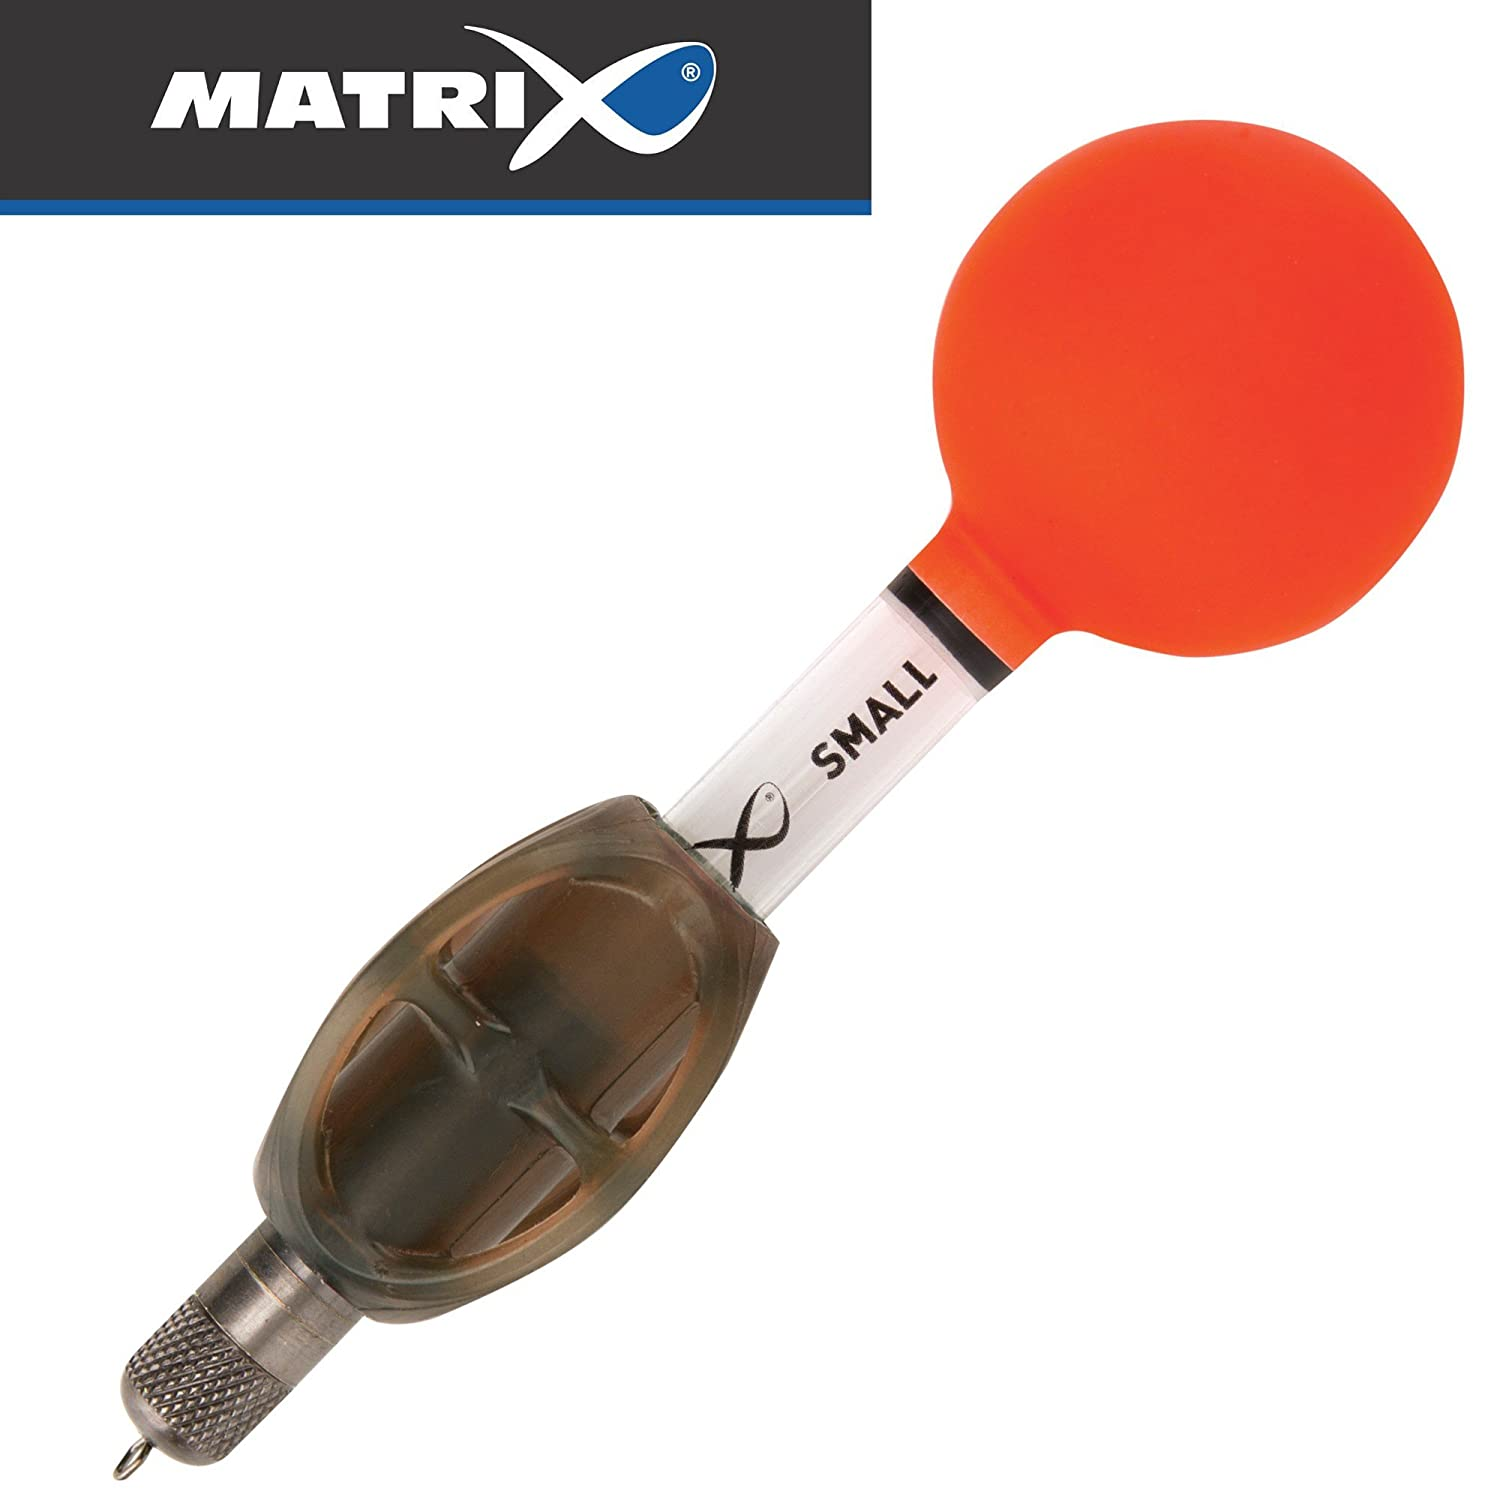 Fox Matrix Impact Bagging Pencil Waggler Pose Feederpose Waggler Schwimmer